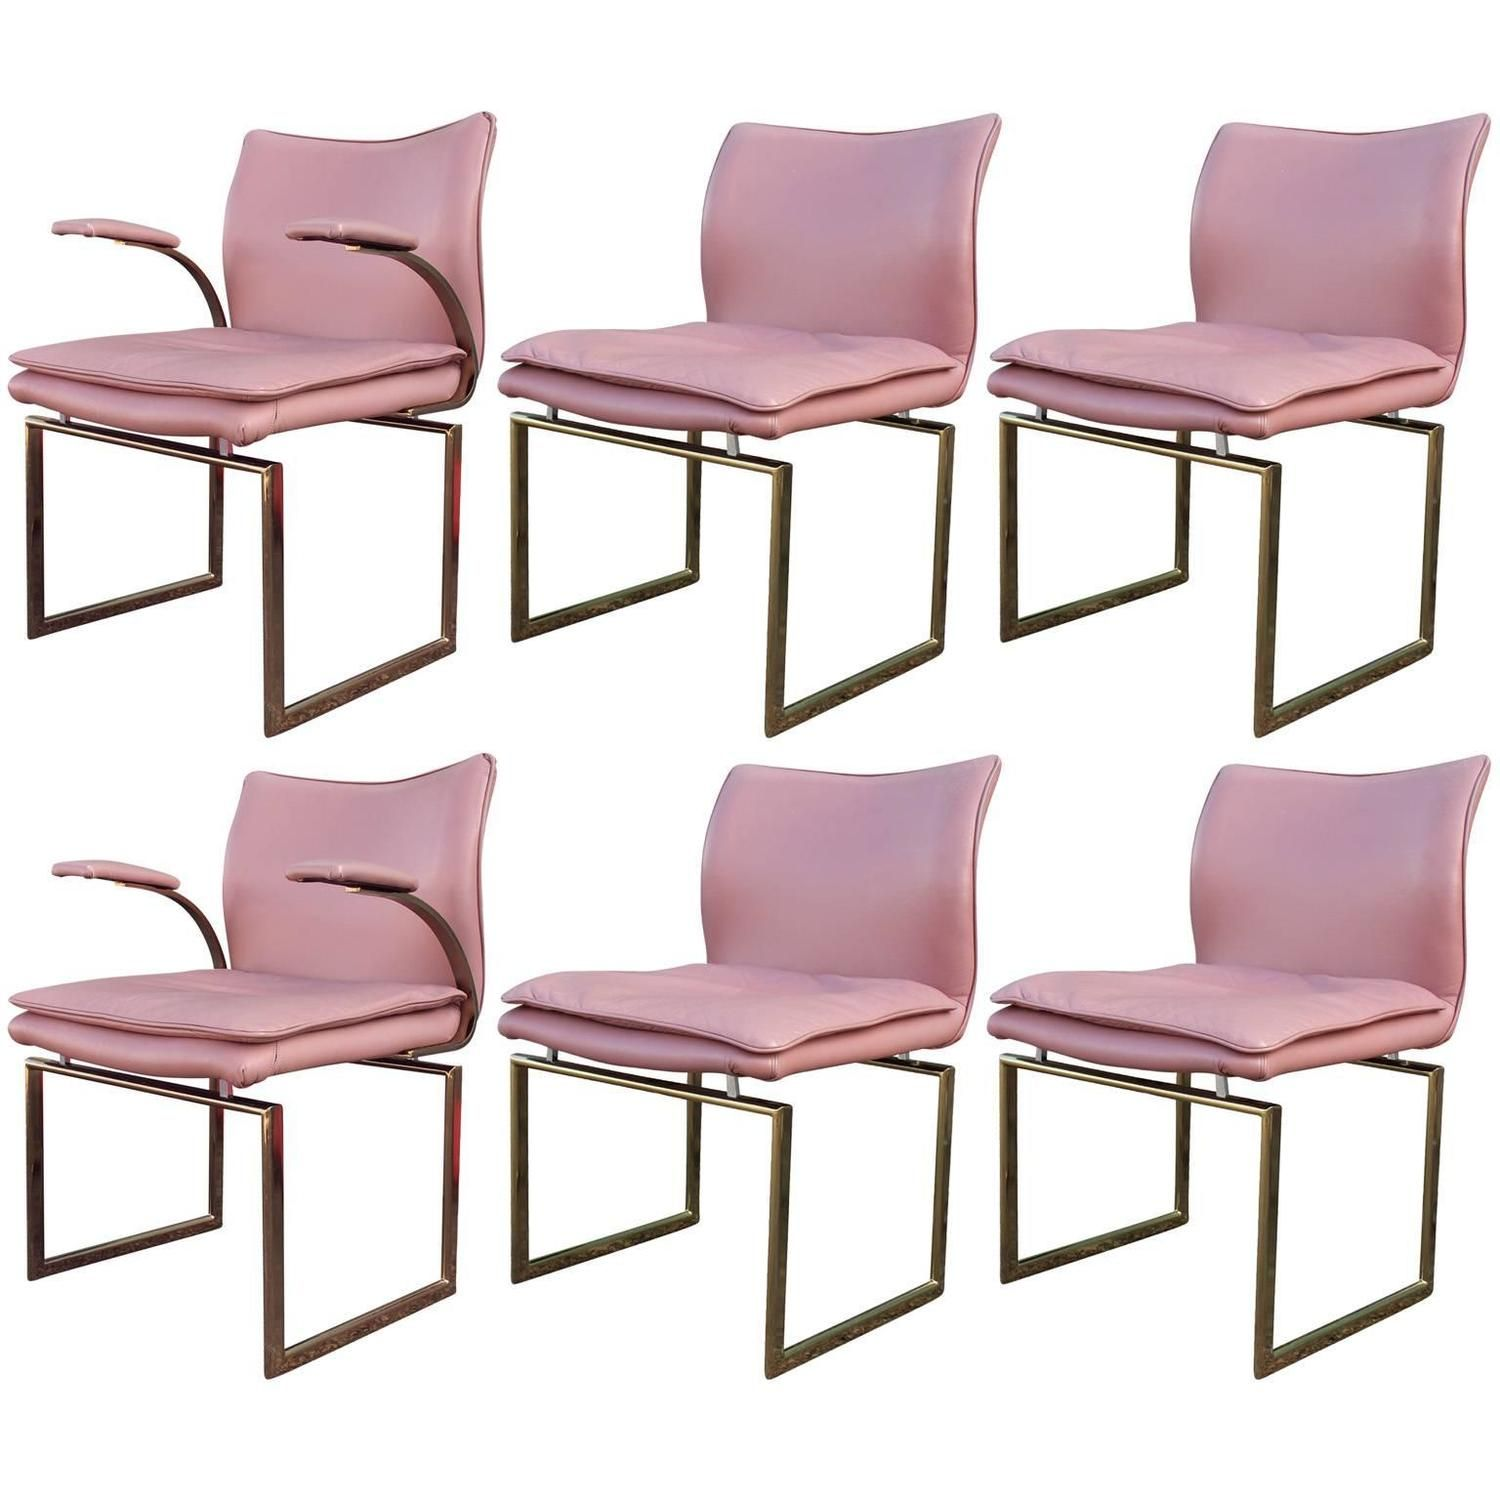 Amazing Superb Fabulous Set Of Six Brass And Pink Leather Dining Chairs |  1stdibs.com Home Great Pictures